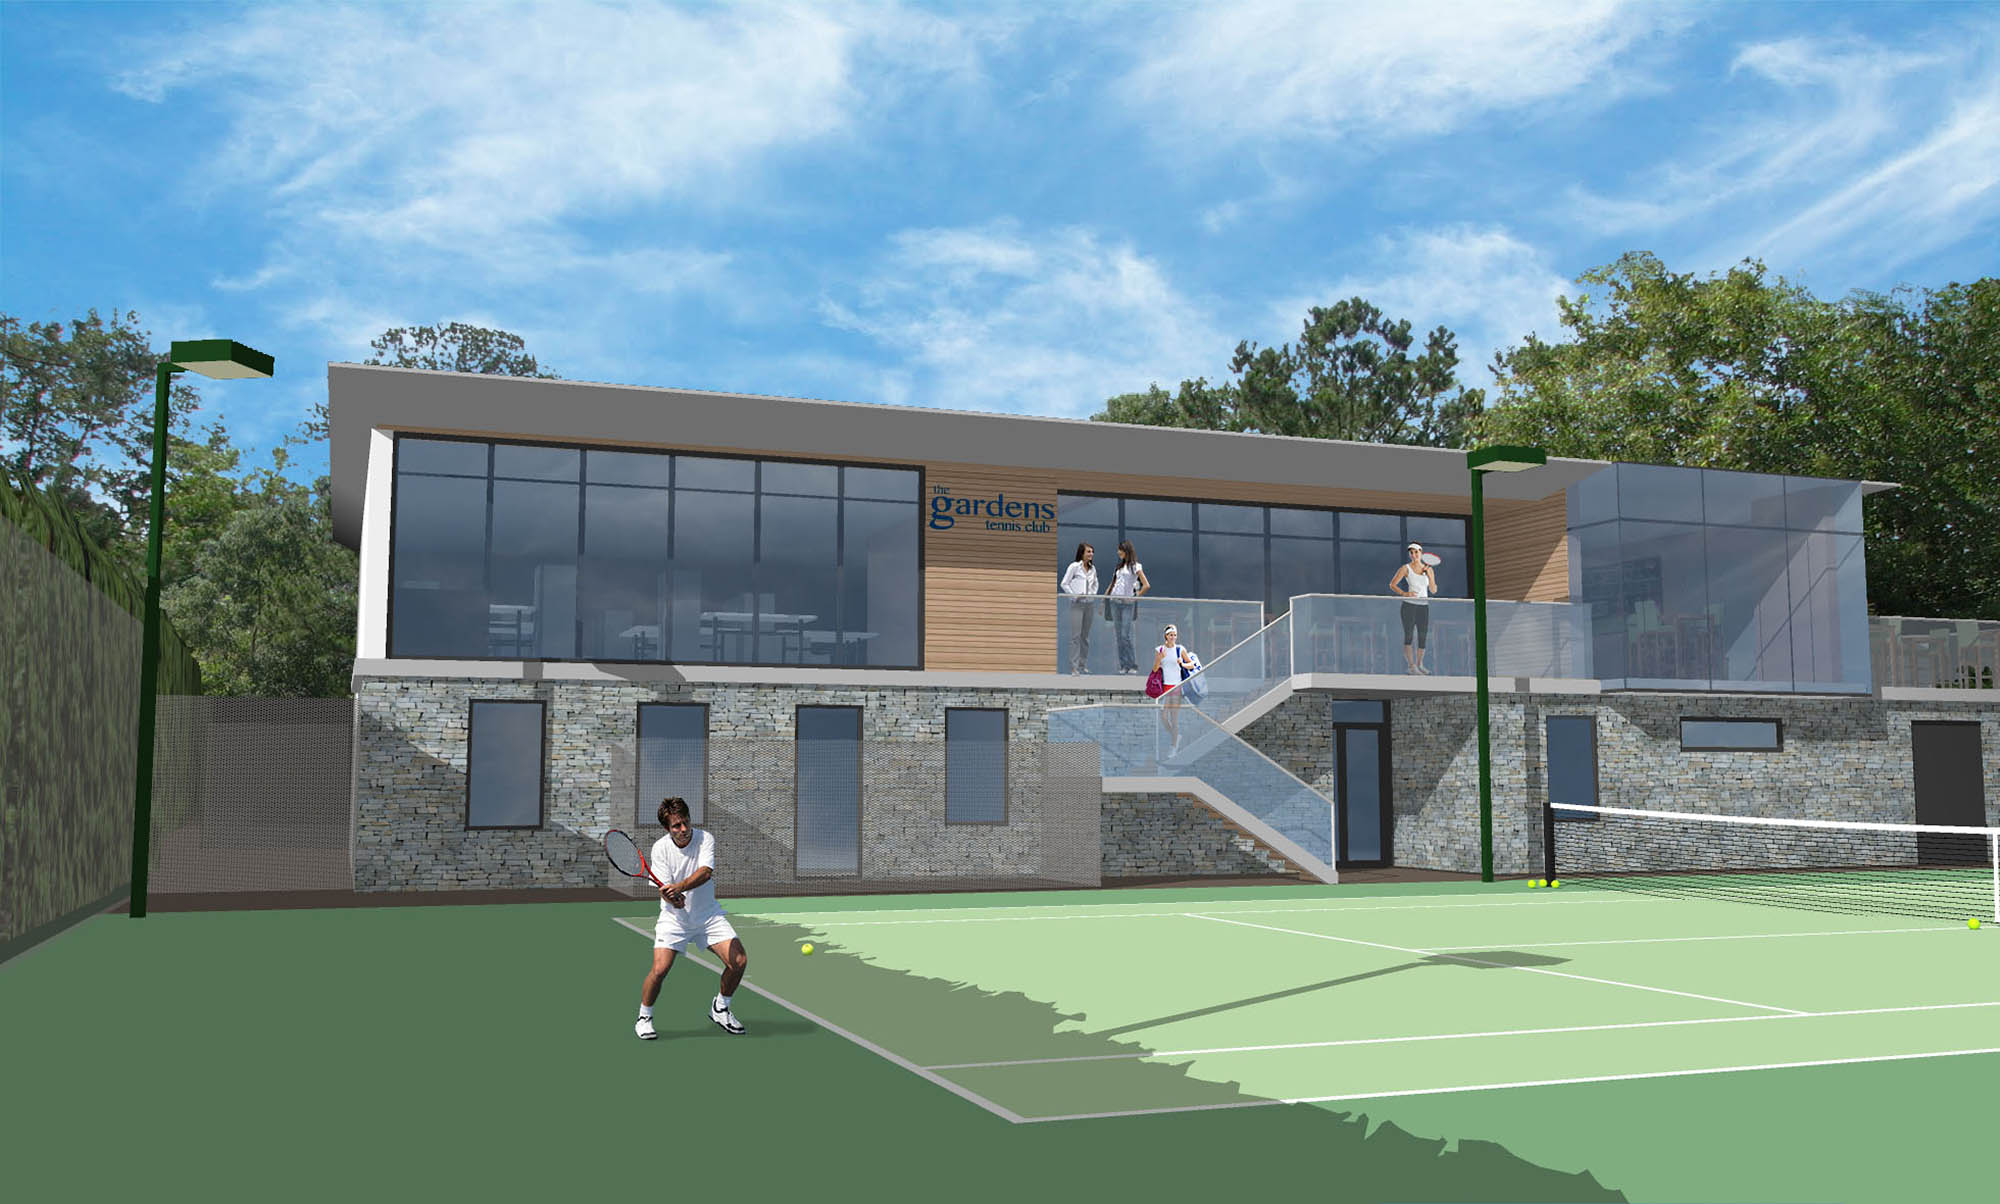 Propsed 3D render design for The Gardens Tennis Club